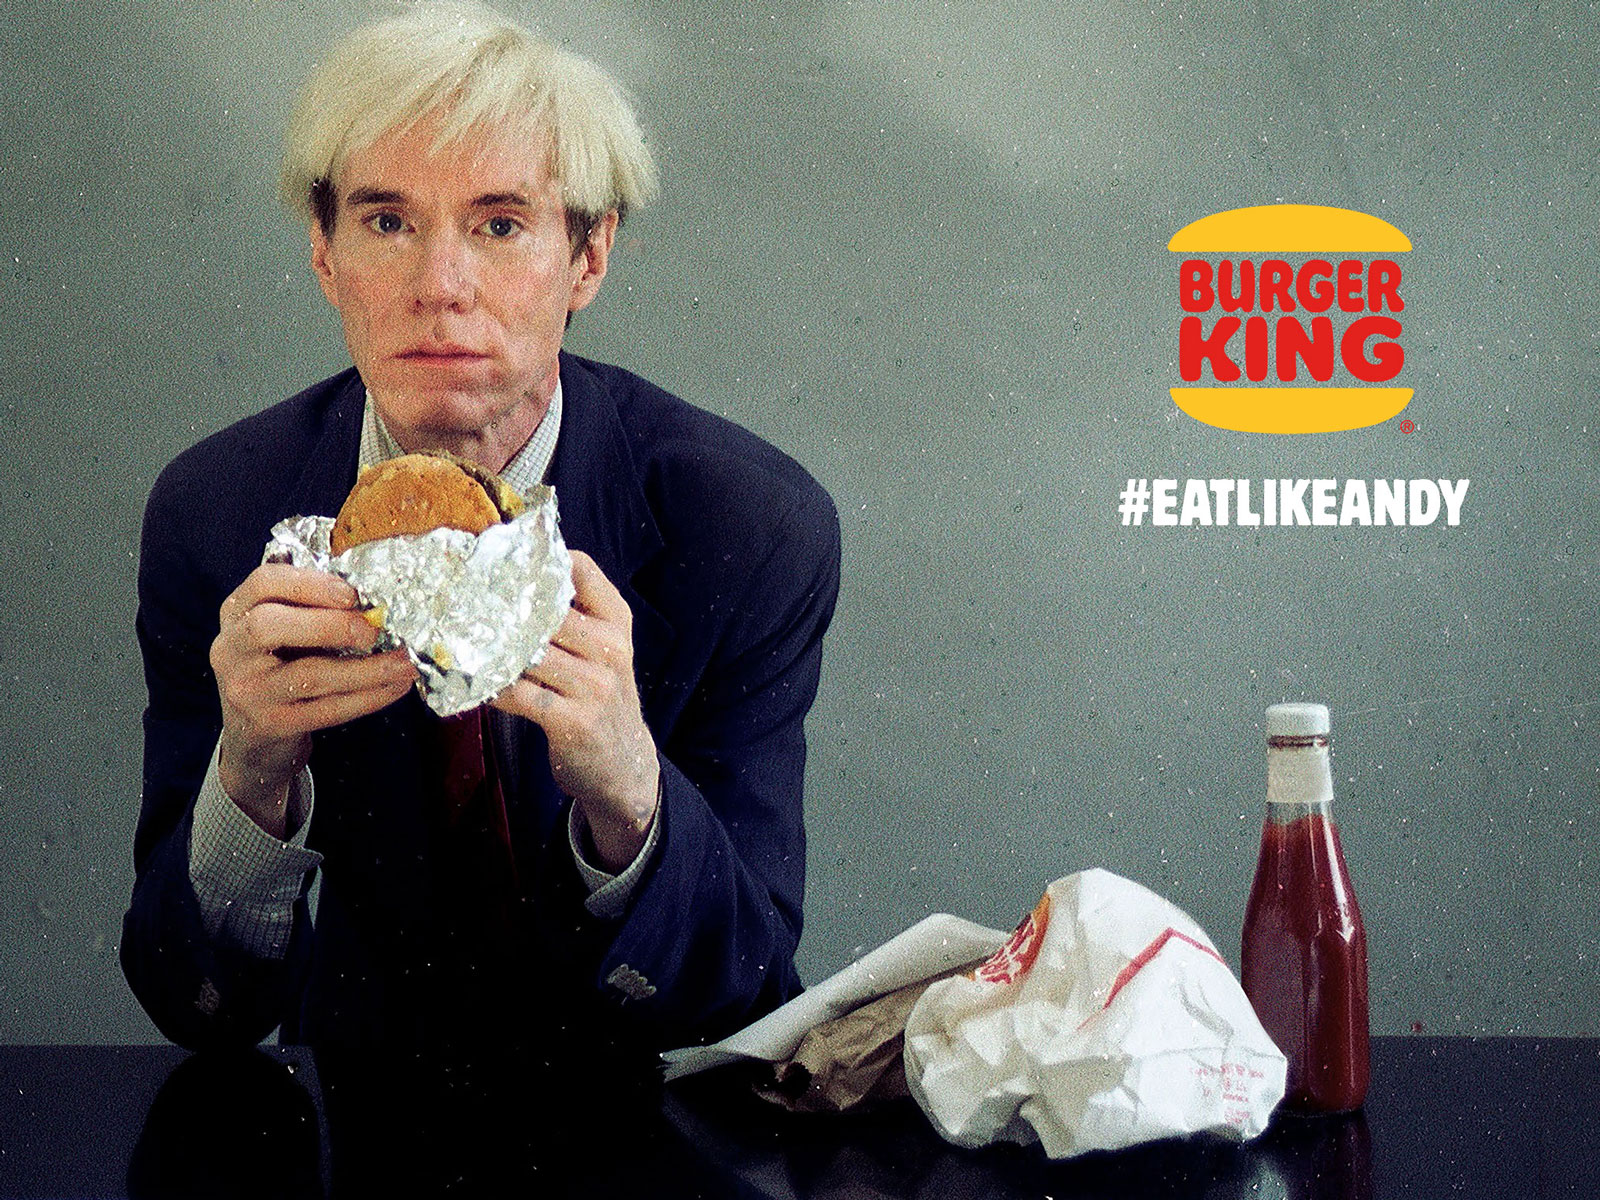 How Burger King Turned Andy Warhol Eating a Whopper into the Anti-Super Bowl Ad